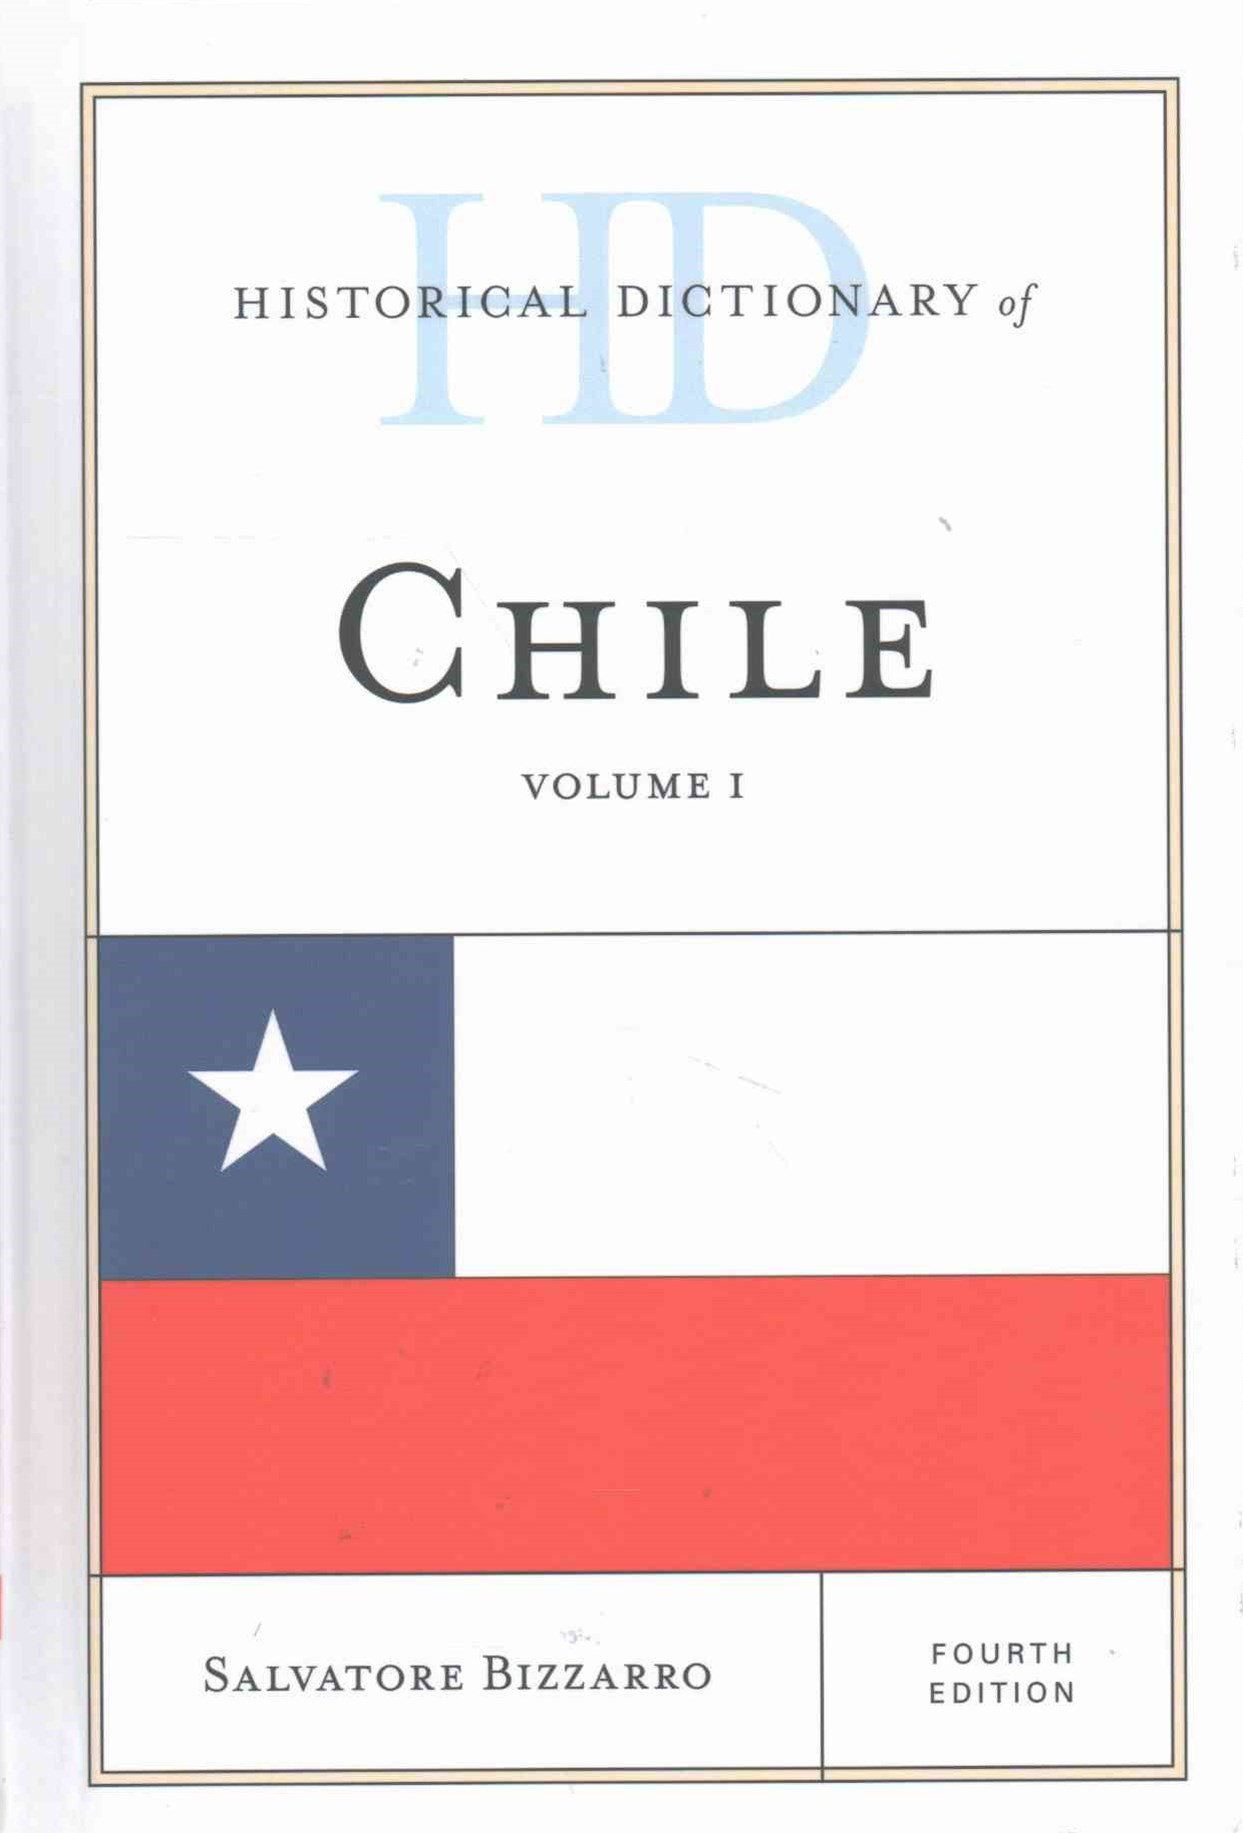 Historical Dictionary of Chile